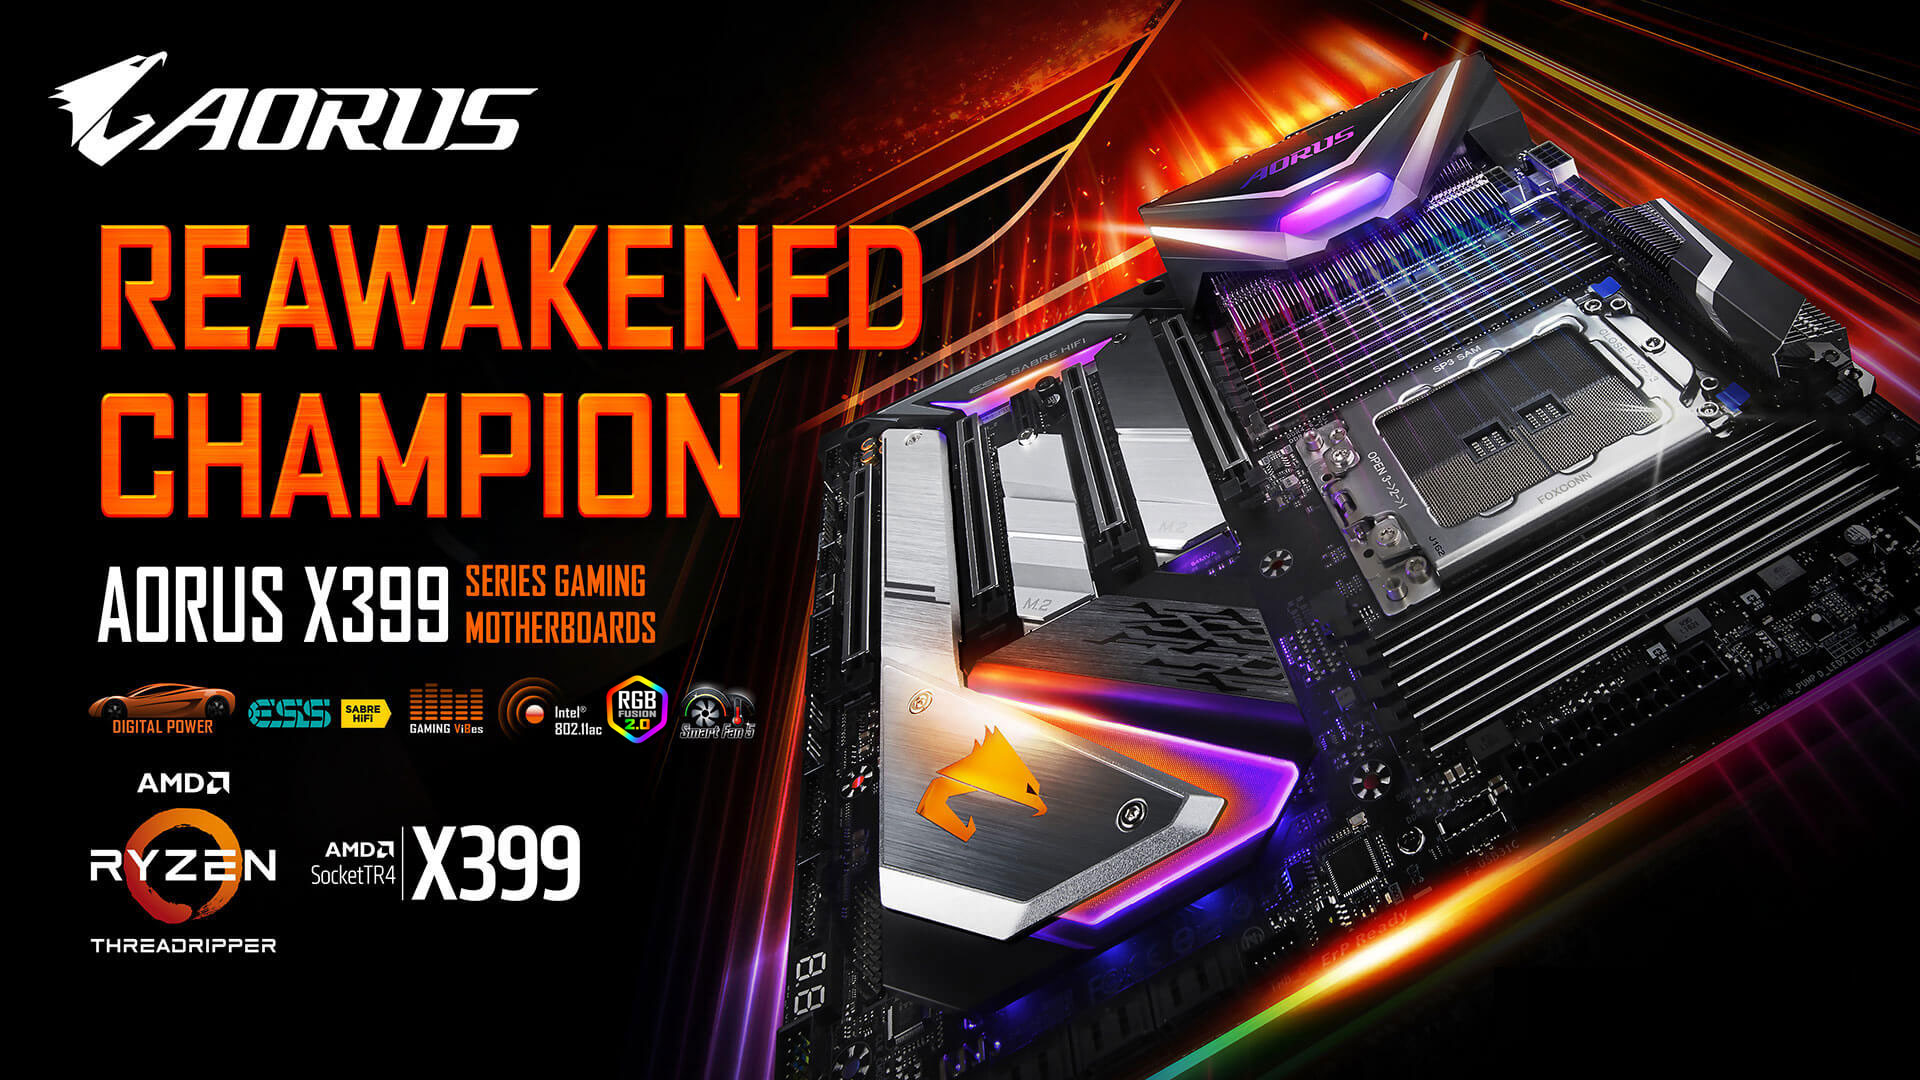 X399 Aorus Xtreme Usb Motherboard Plug Wiring Diagram On 2 0 Connection Excellence